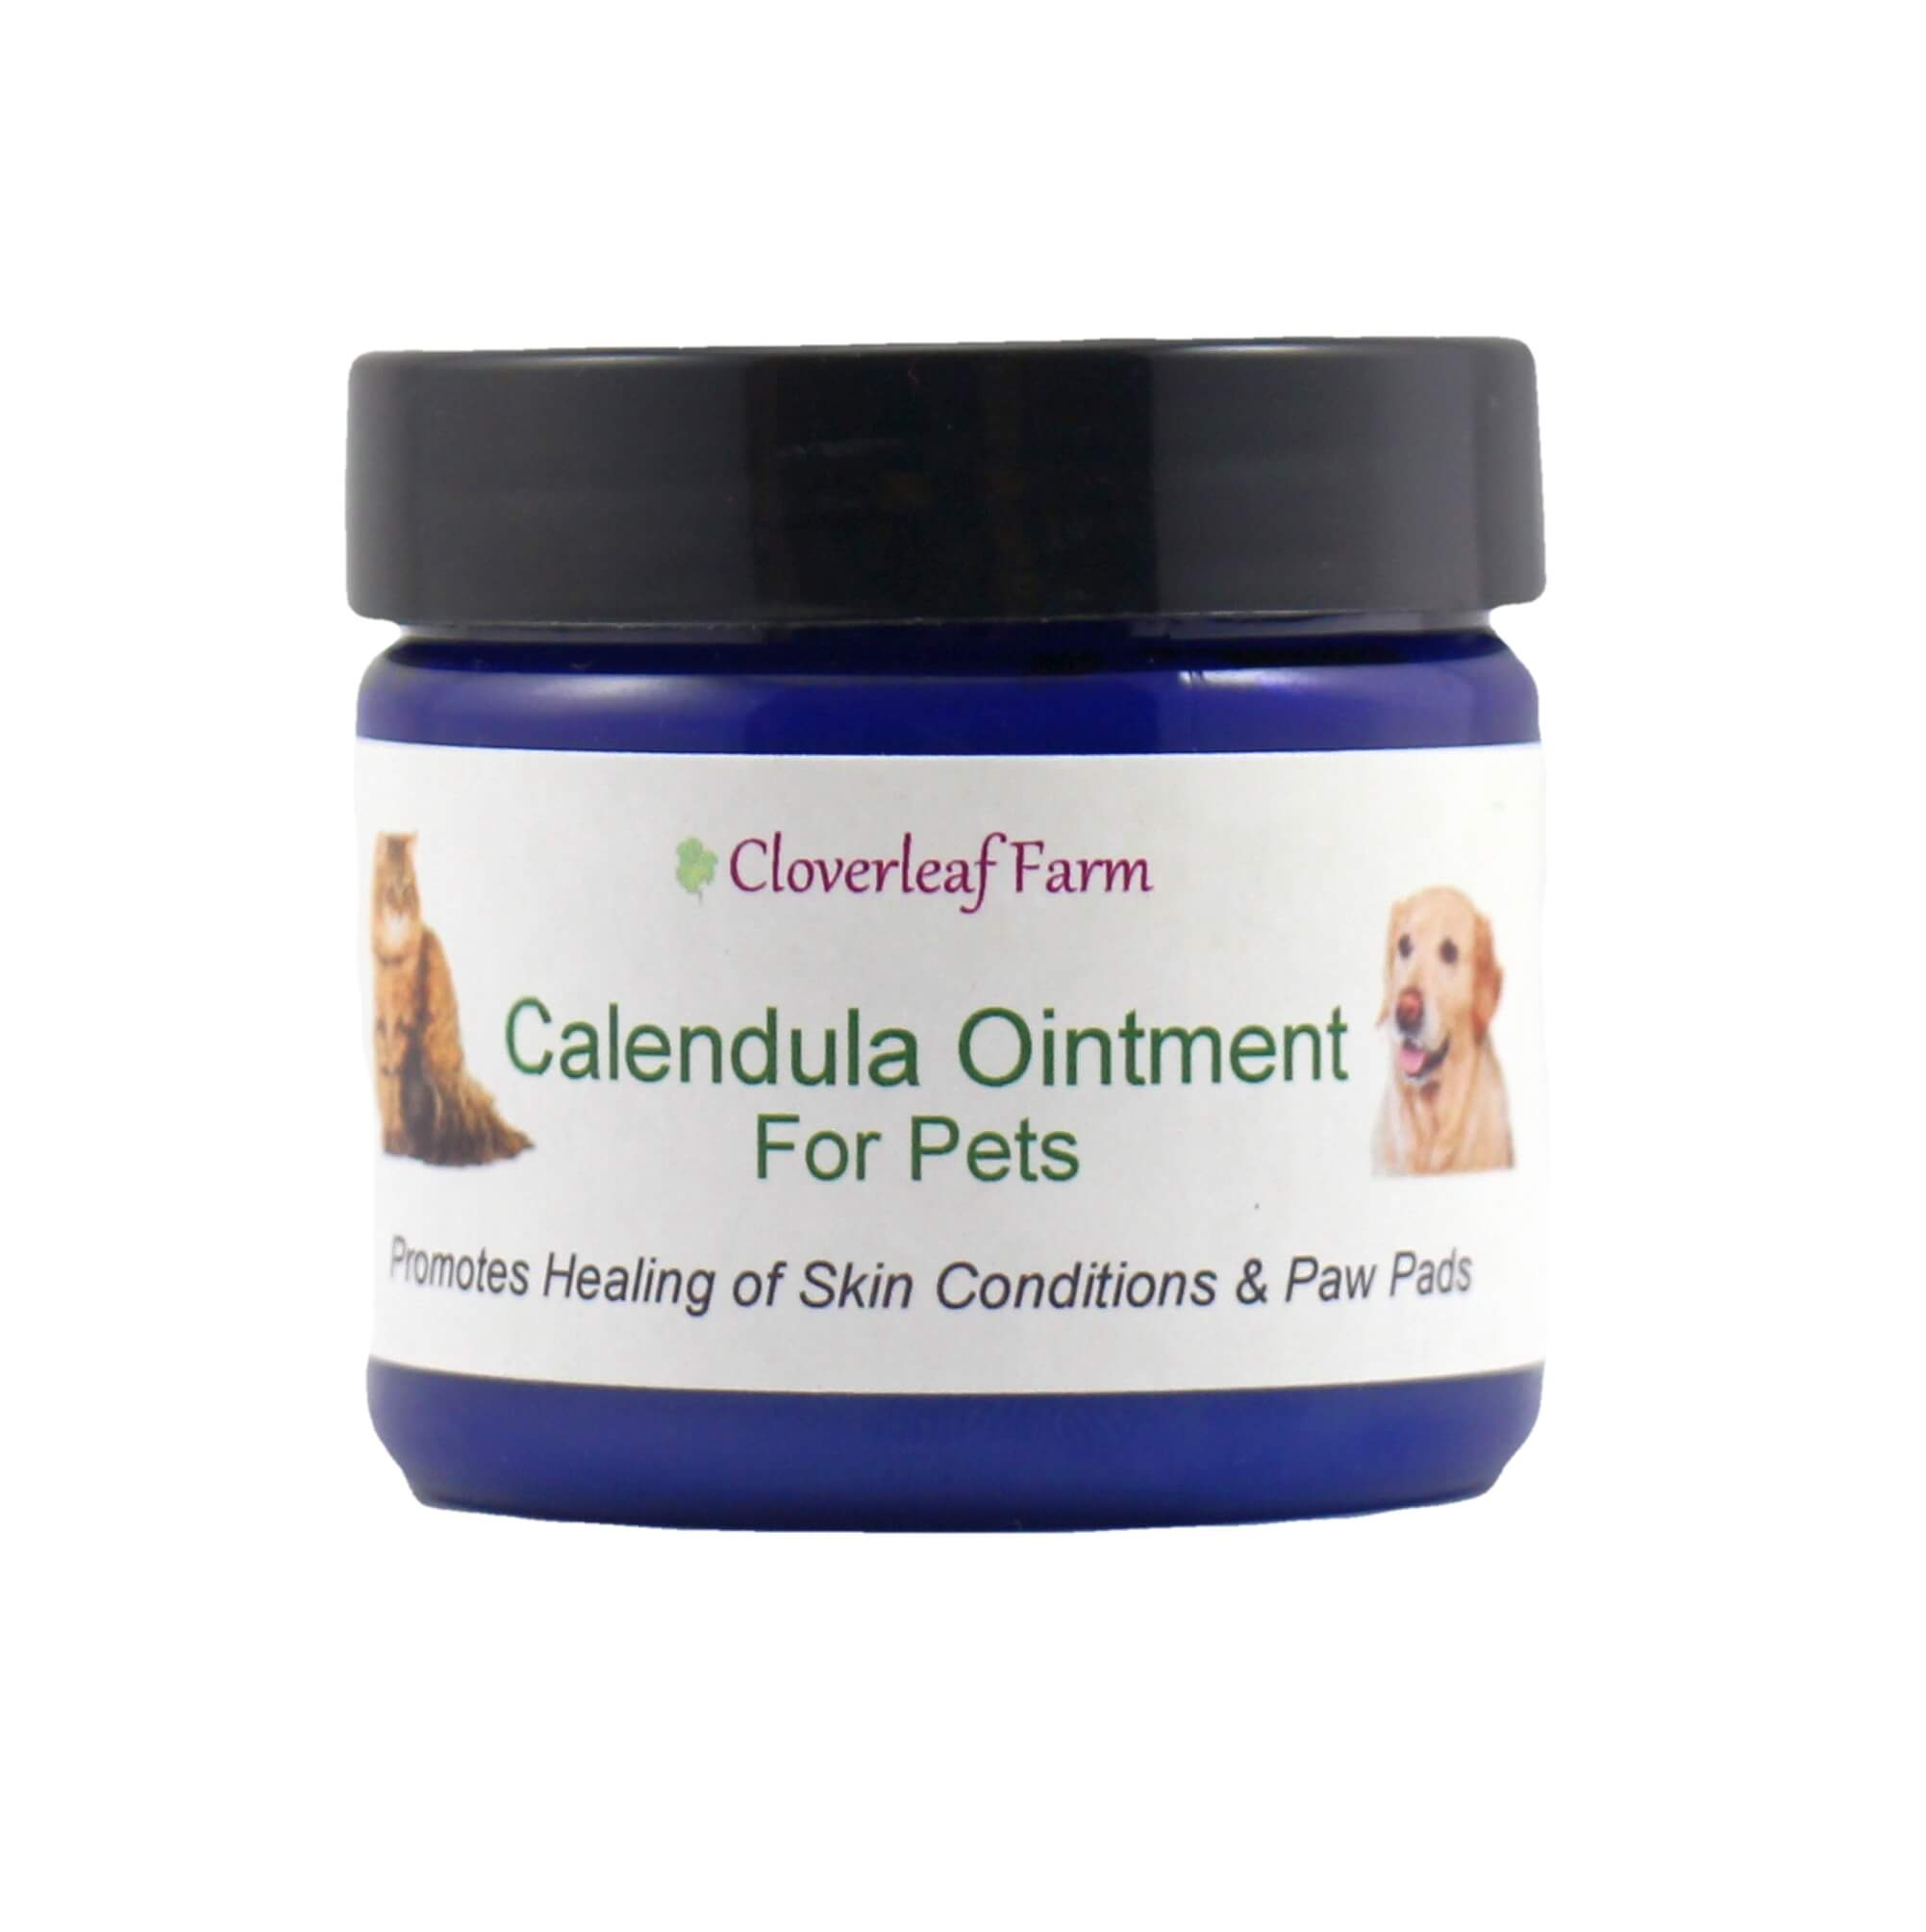 Calendula Ointment for Pets